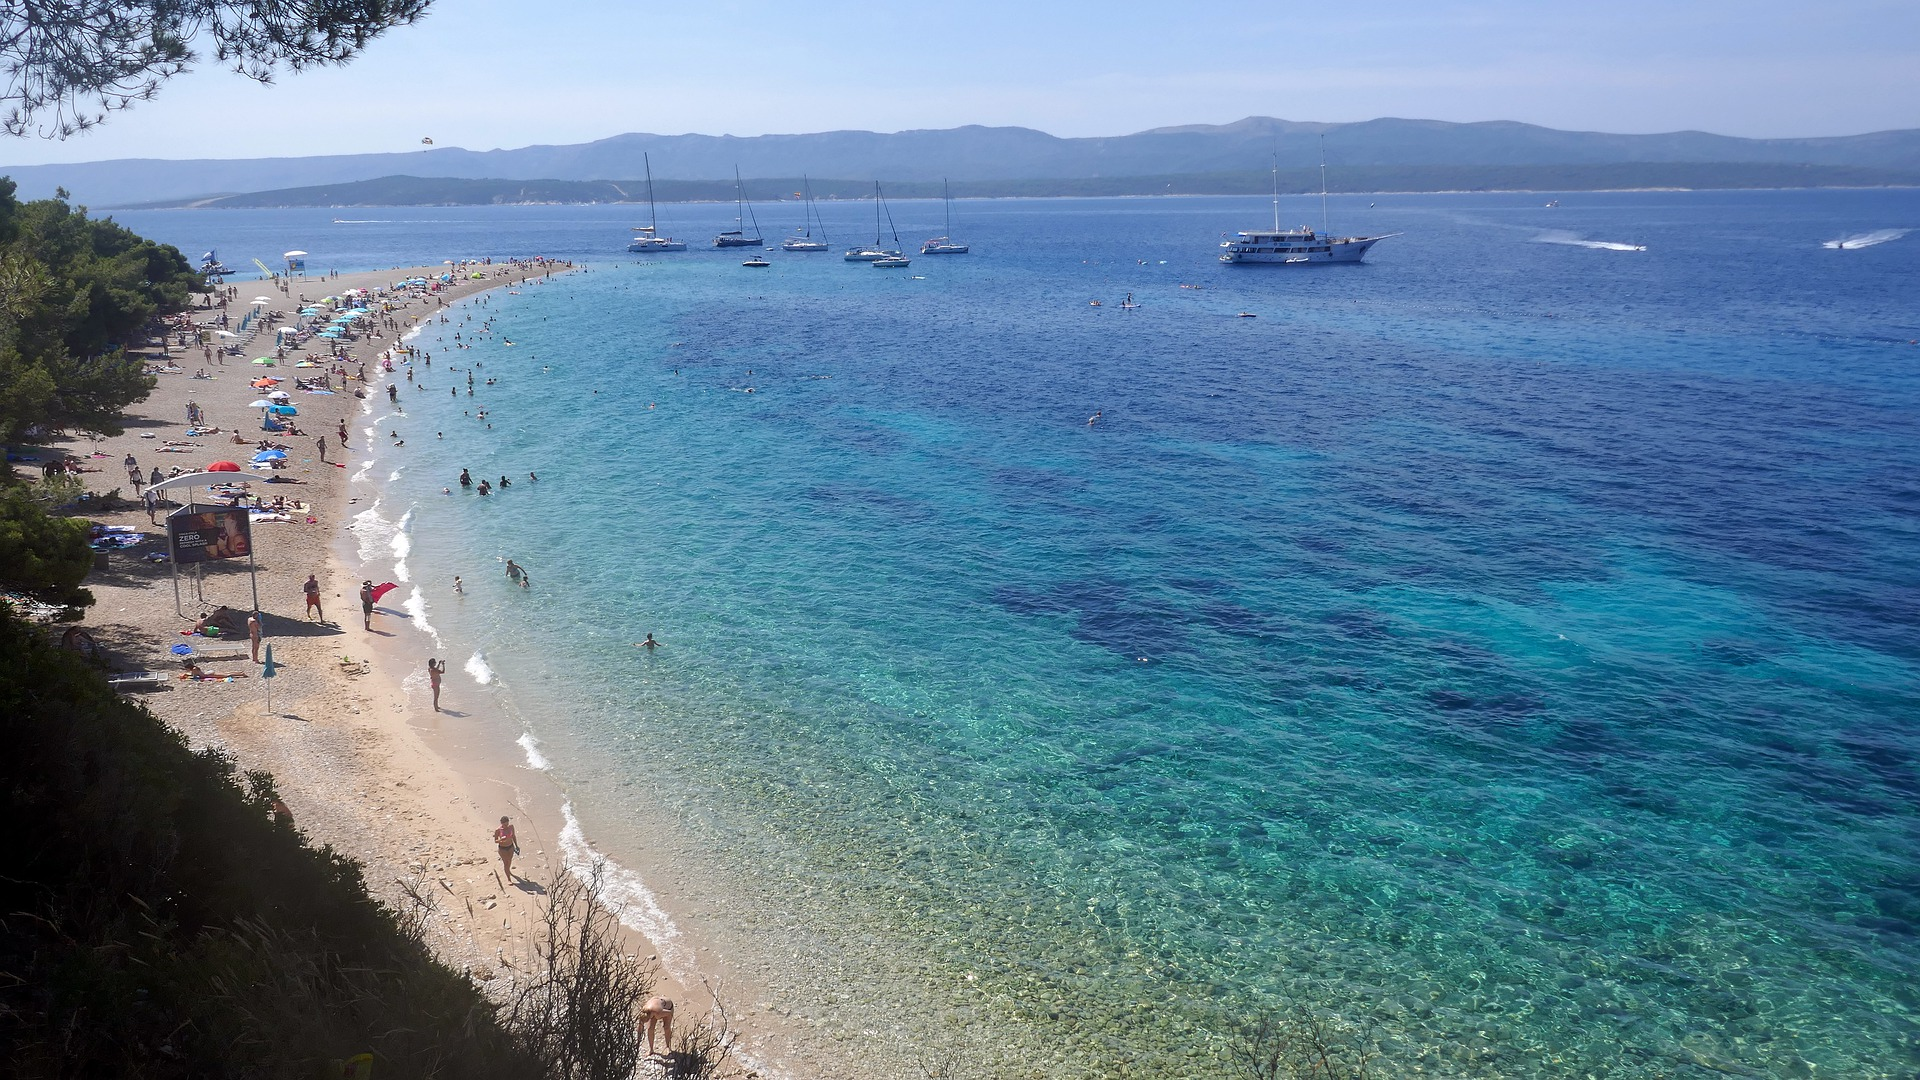 sandy and pebble beach in Croatia with boats at anchor in background